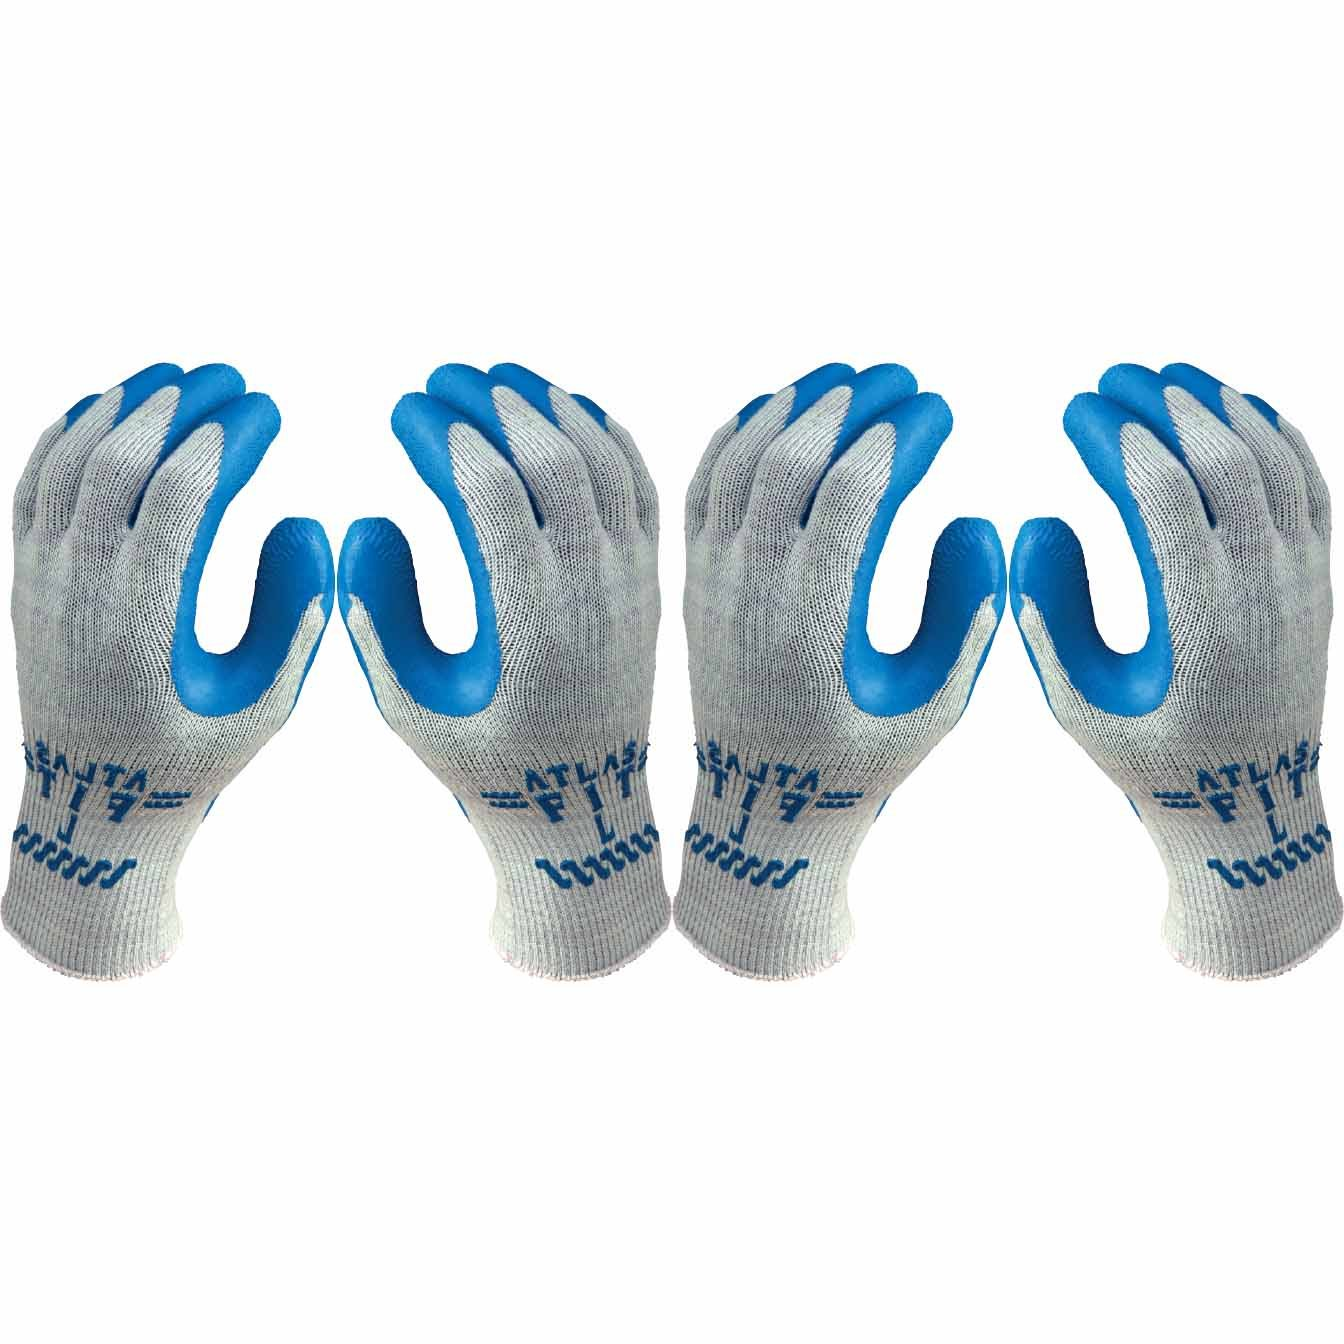 Atlas Fit 300 Blue Latex Palm-Dipped Blue Rubber Work Glove X-Large, 72-Pair by Atlas Showa (Image #2)